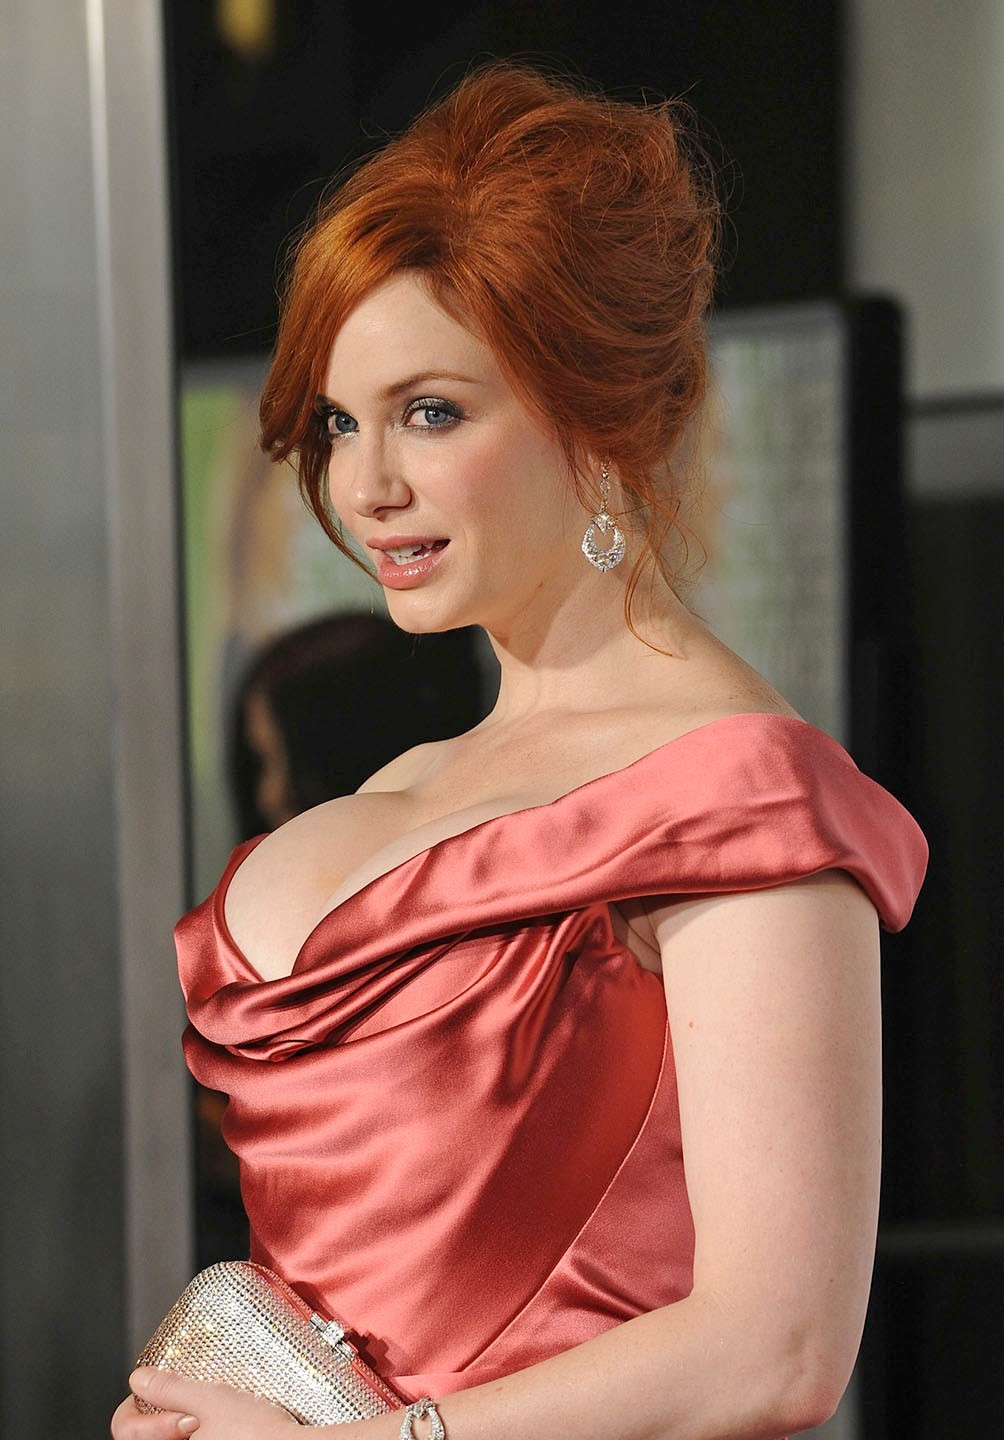 Christina-Hendricks-Hot-Boobs-Pics-Stills-At-Film -2784